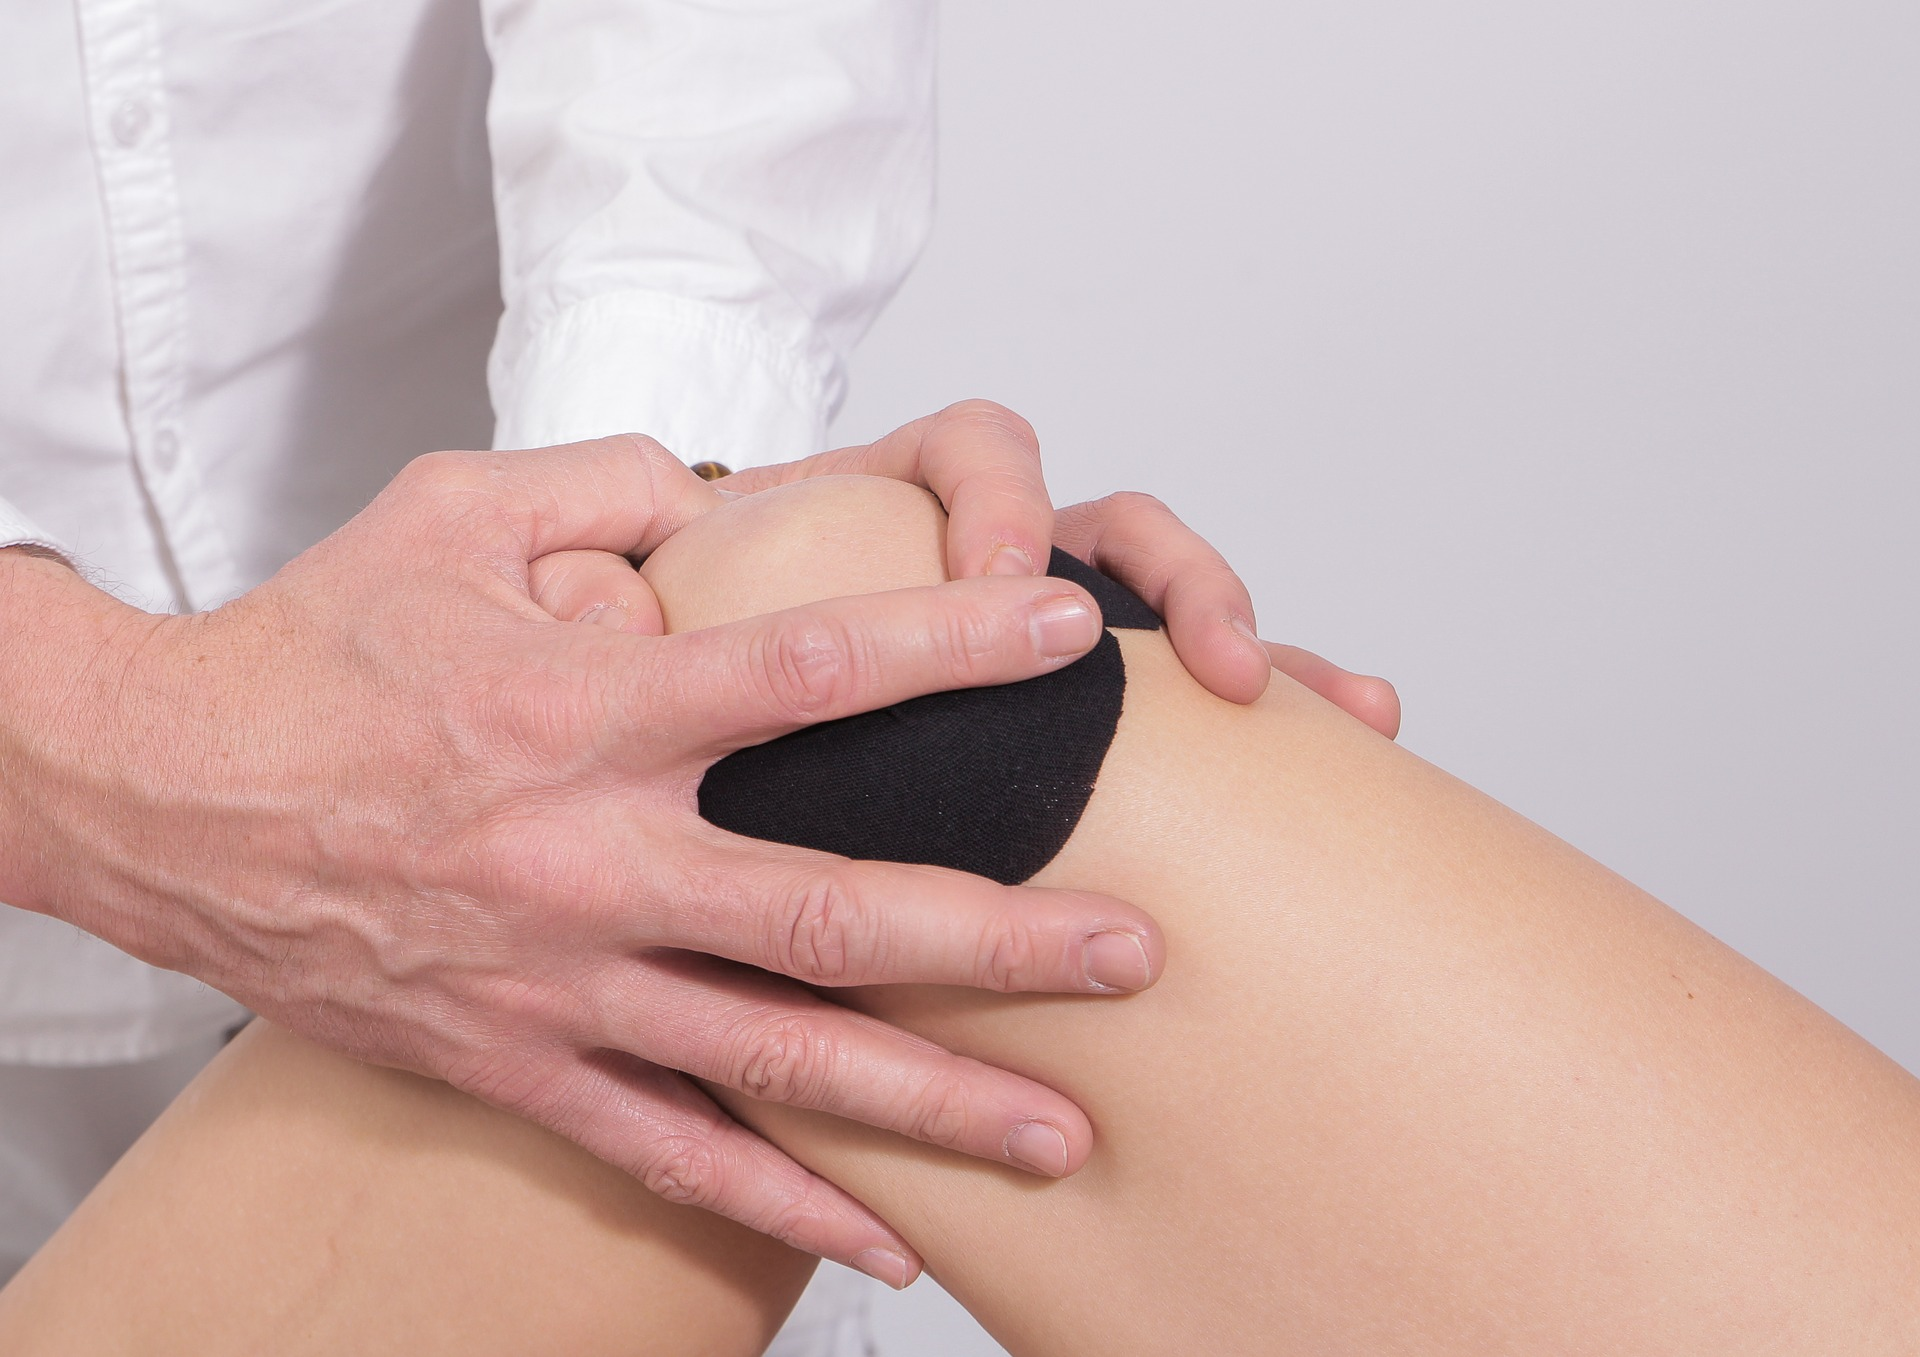 Athletic trainer wraps and treats injured knee